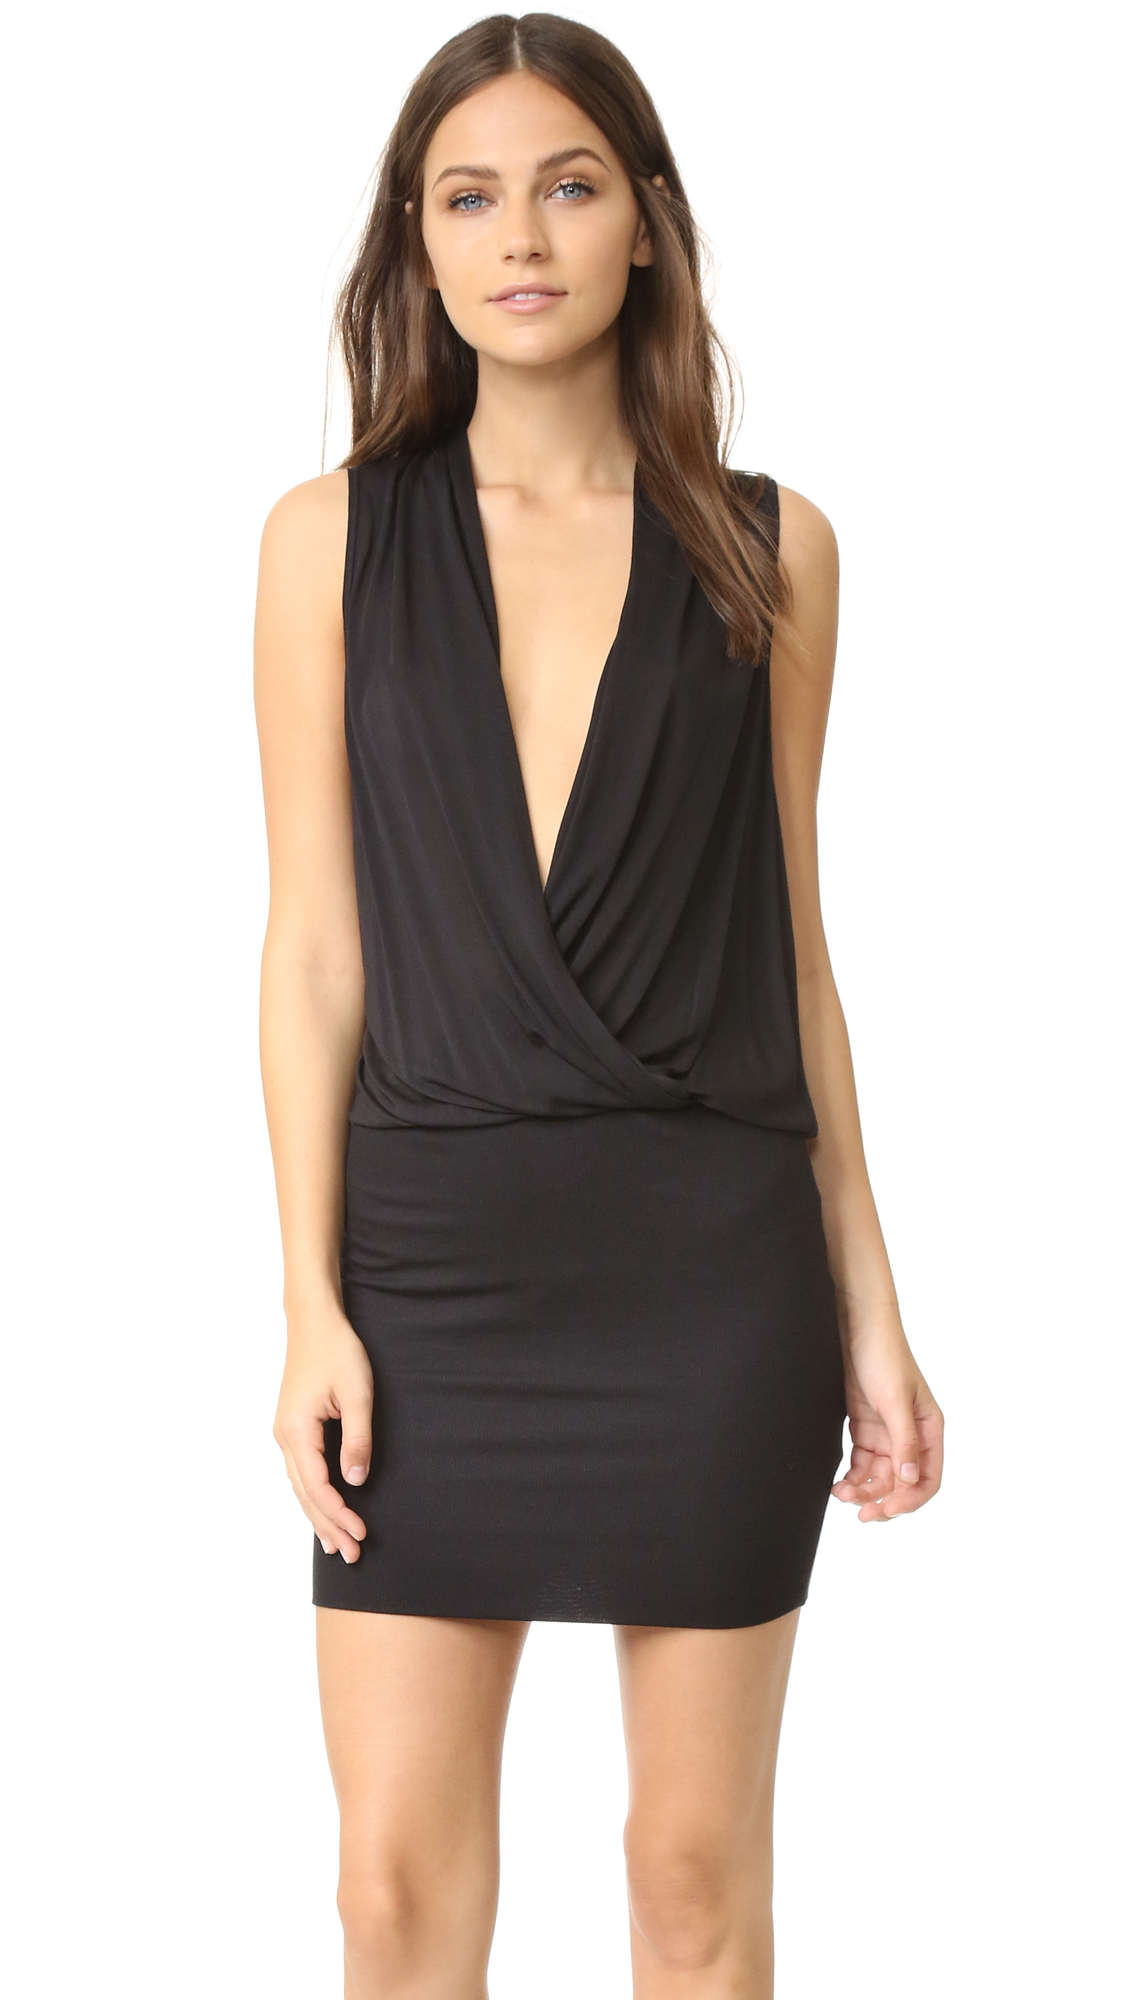 Lanston Surplice Mini Dress - Black at Shopbop